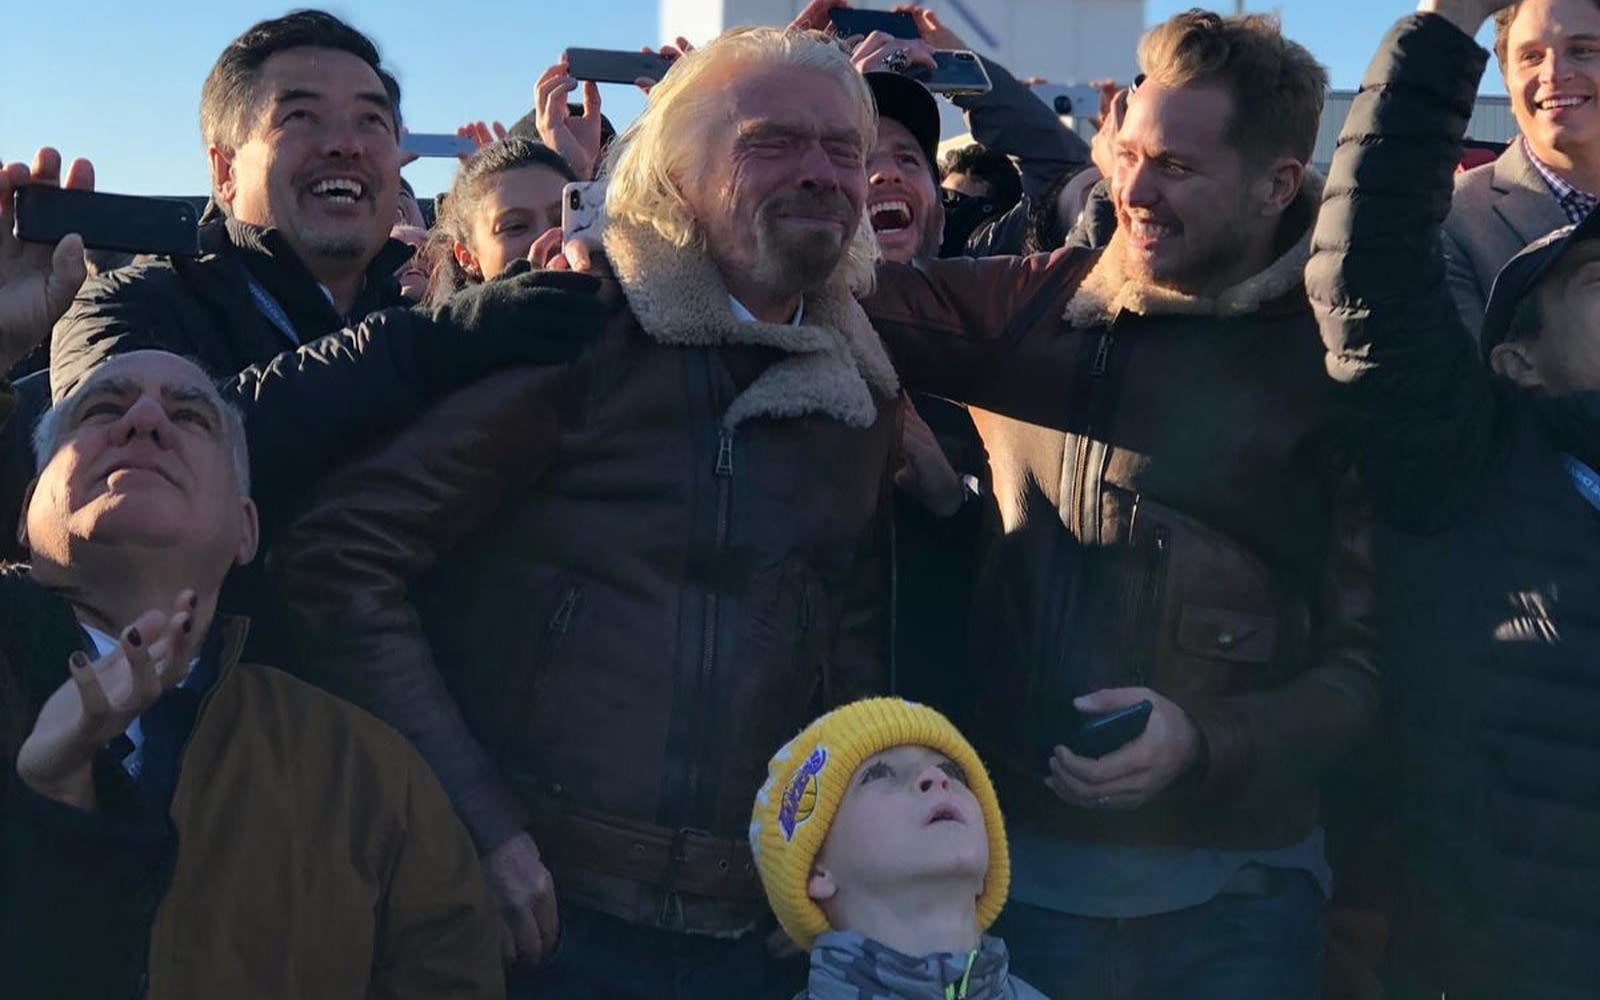 Richard Branson and Sam Branson celebrate with a crowd during Virgin Galactic's first spaceflight